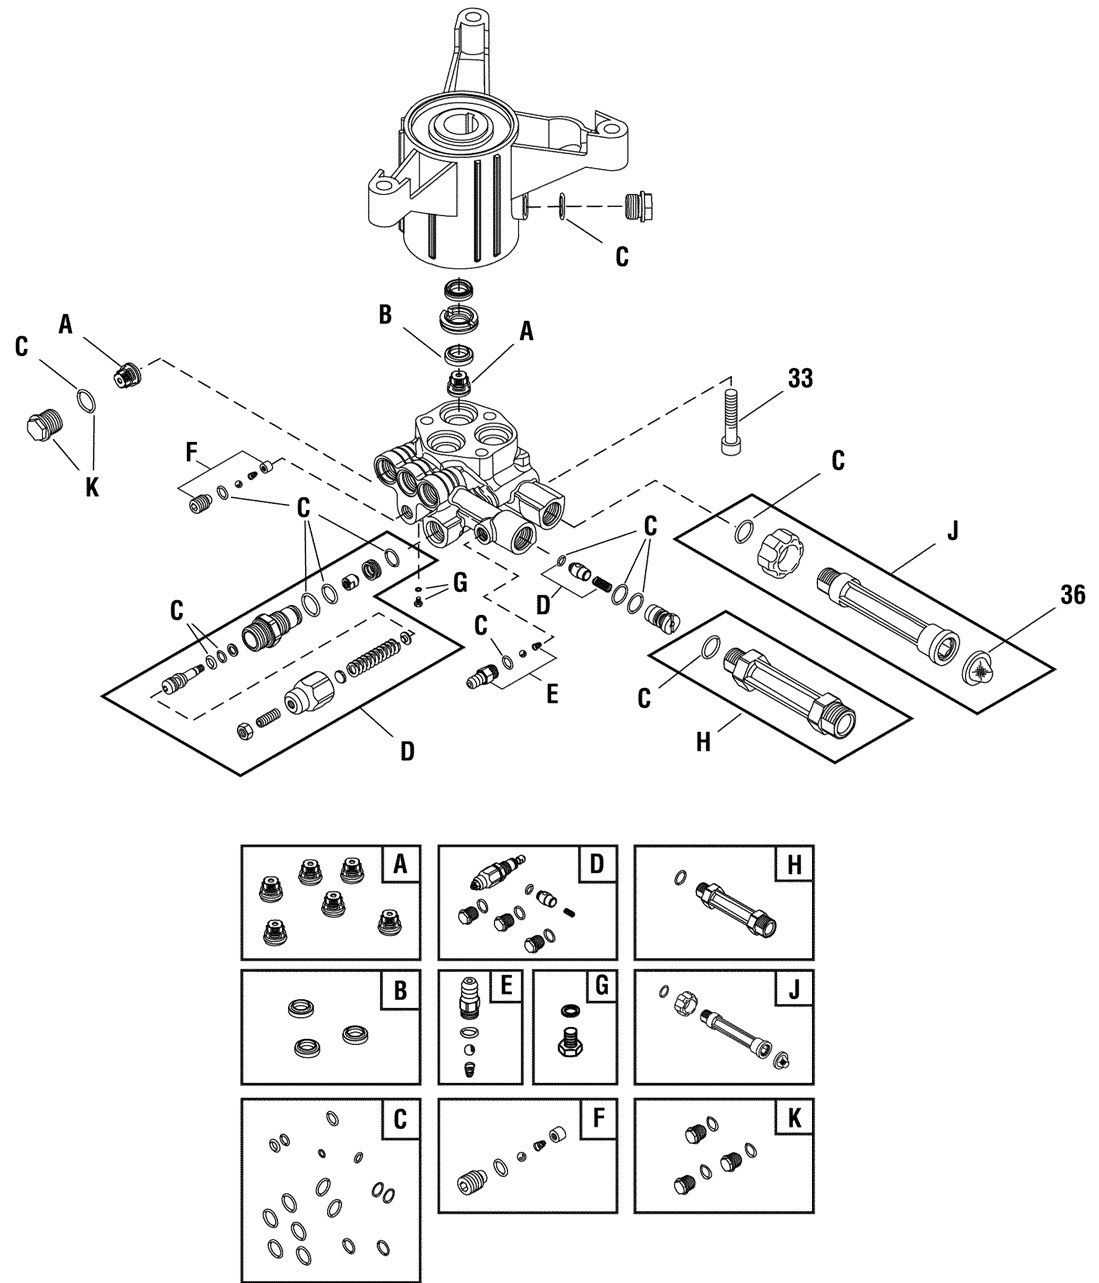 troy bilt pressure washer parts diagram visio tree template model 020344 1 and 2